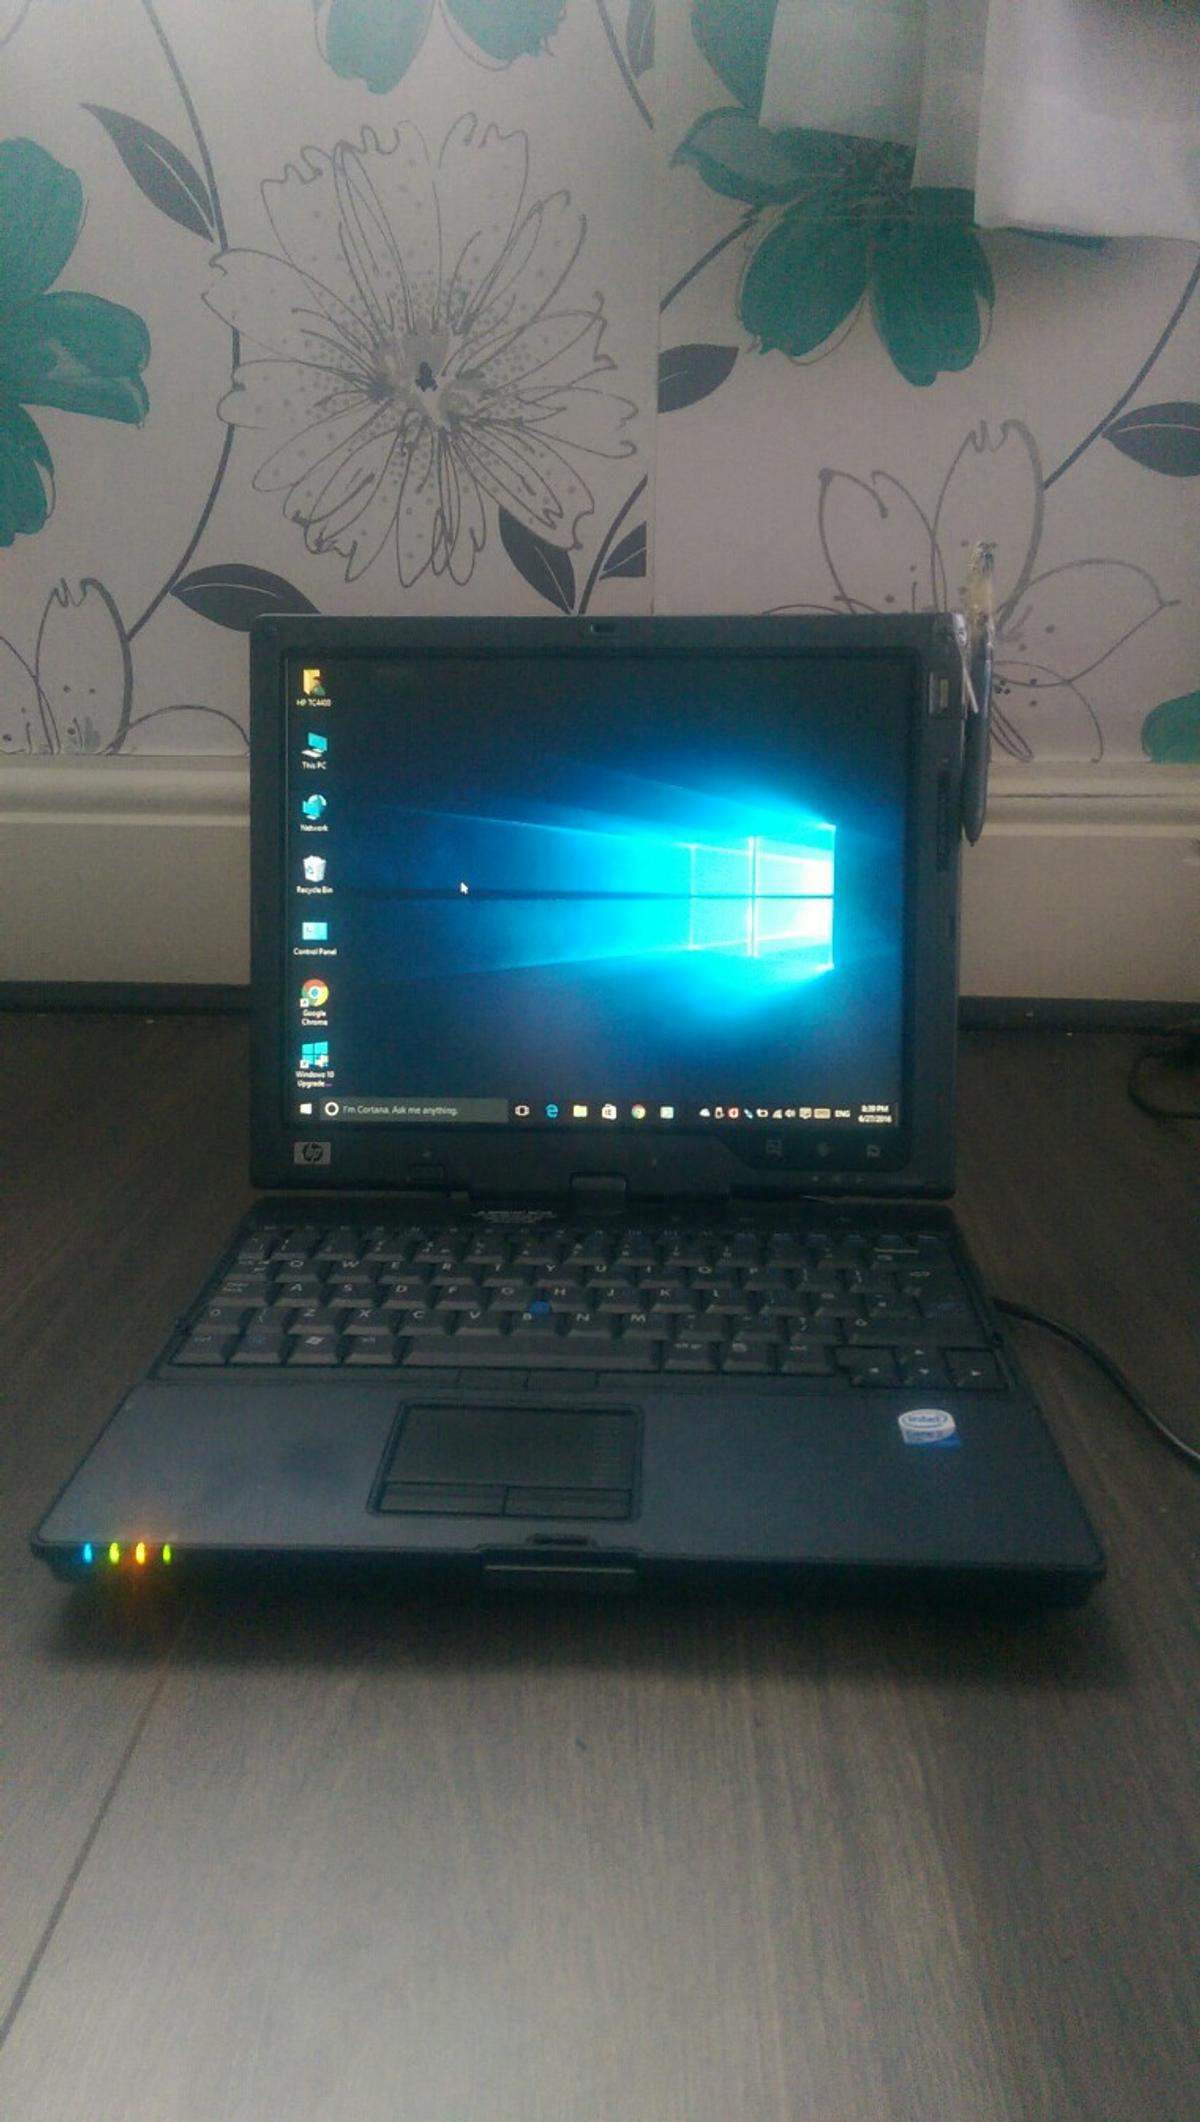 Hp tc4400 windows 10 laptop tablet in HX1 Calderdale for £40 00 for